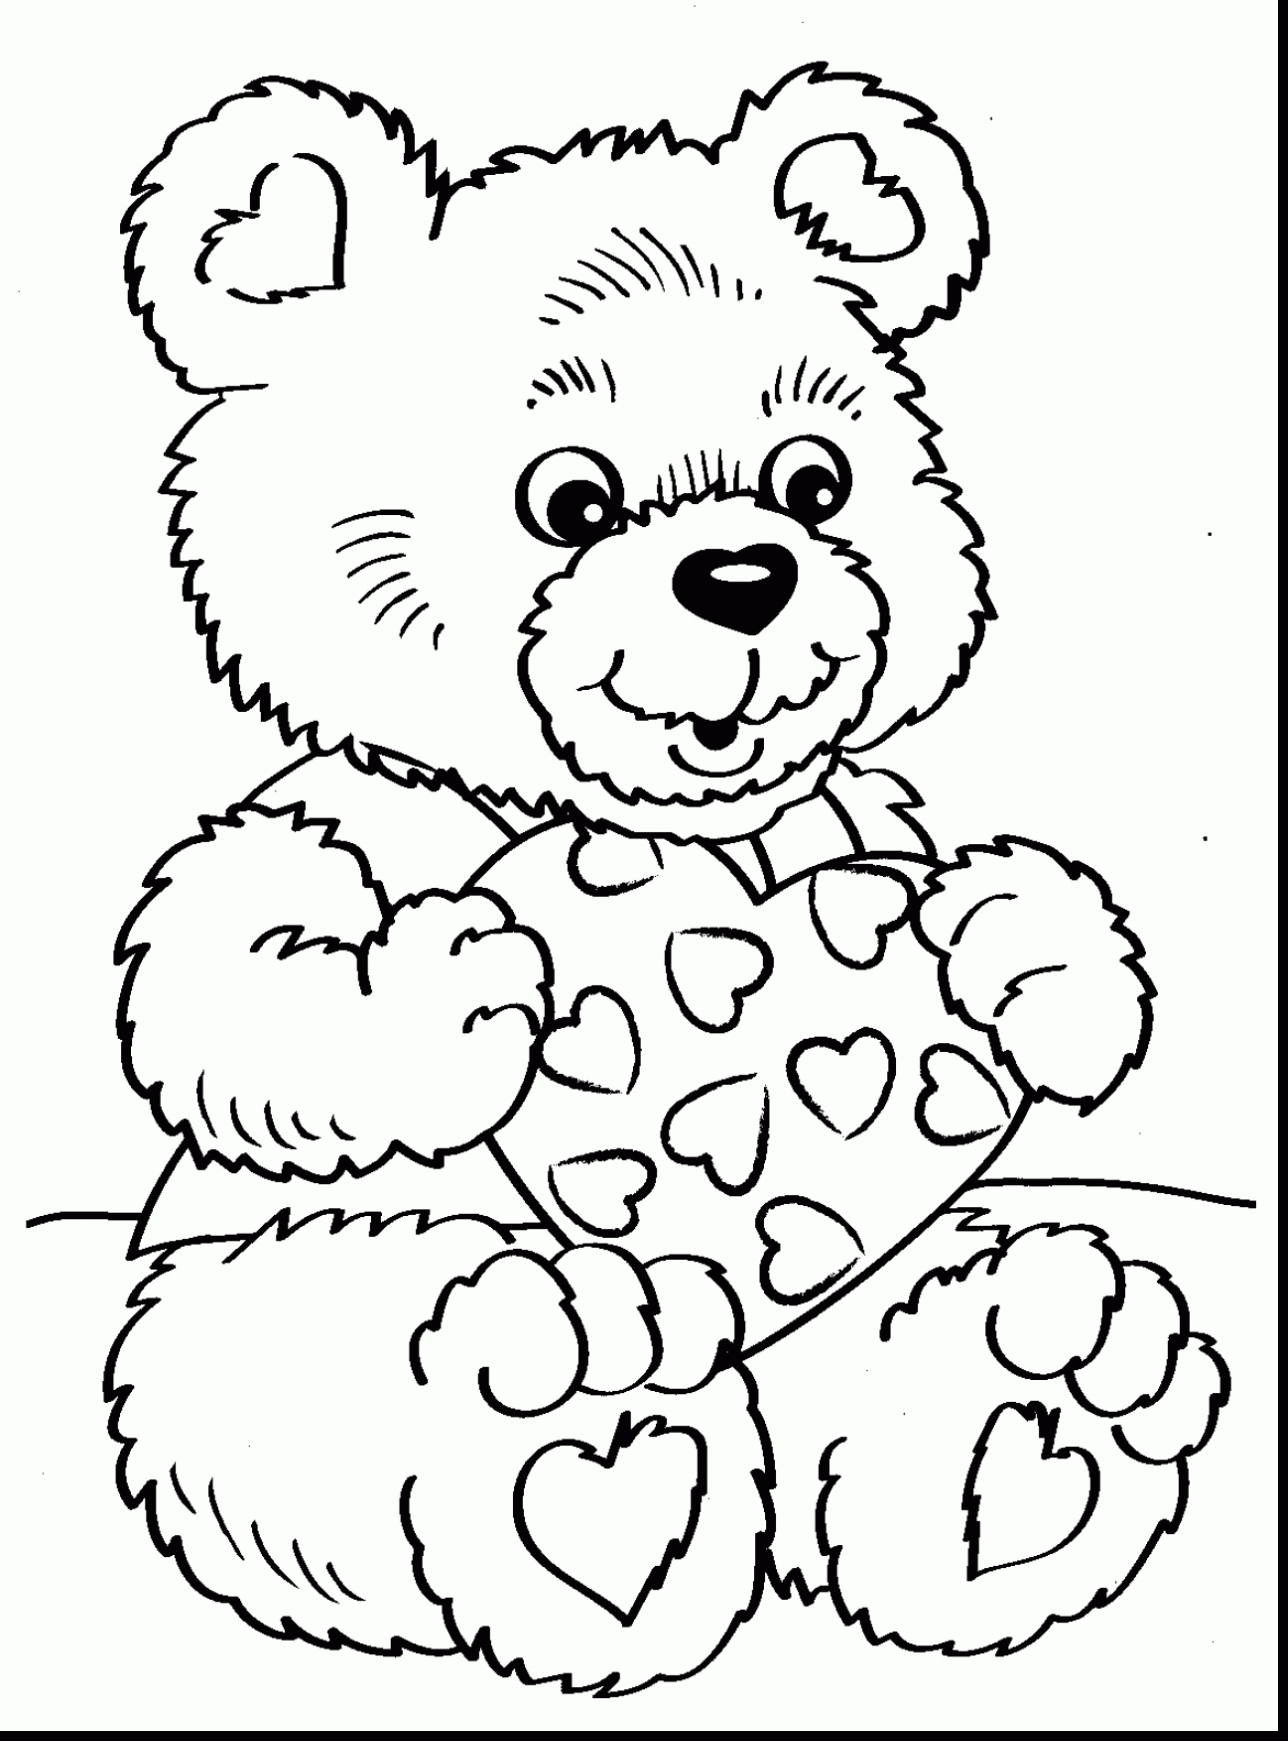 Valentines Day Coloring Pages Printable Download Free Coloring Books Printable Of I Love You Free Valentines S0189 Coloring Pages Printable Collection